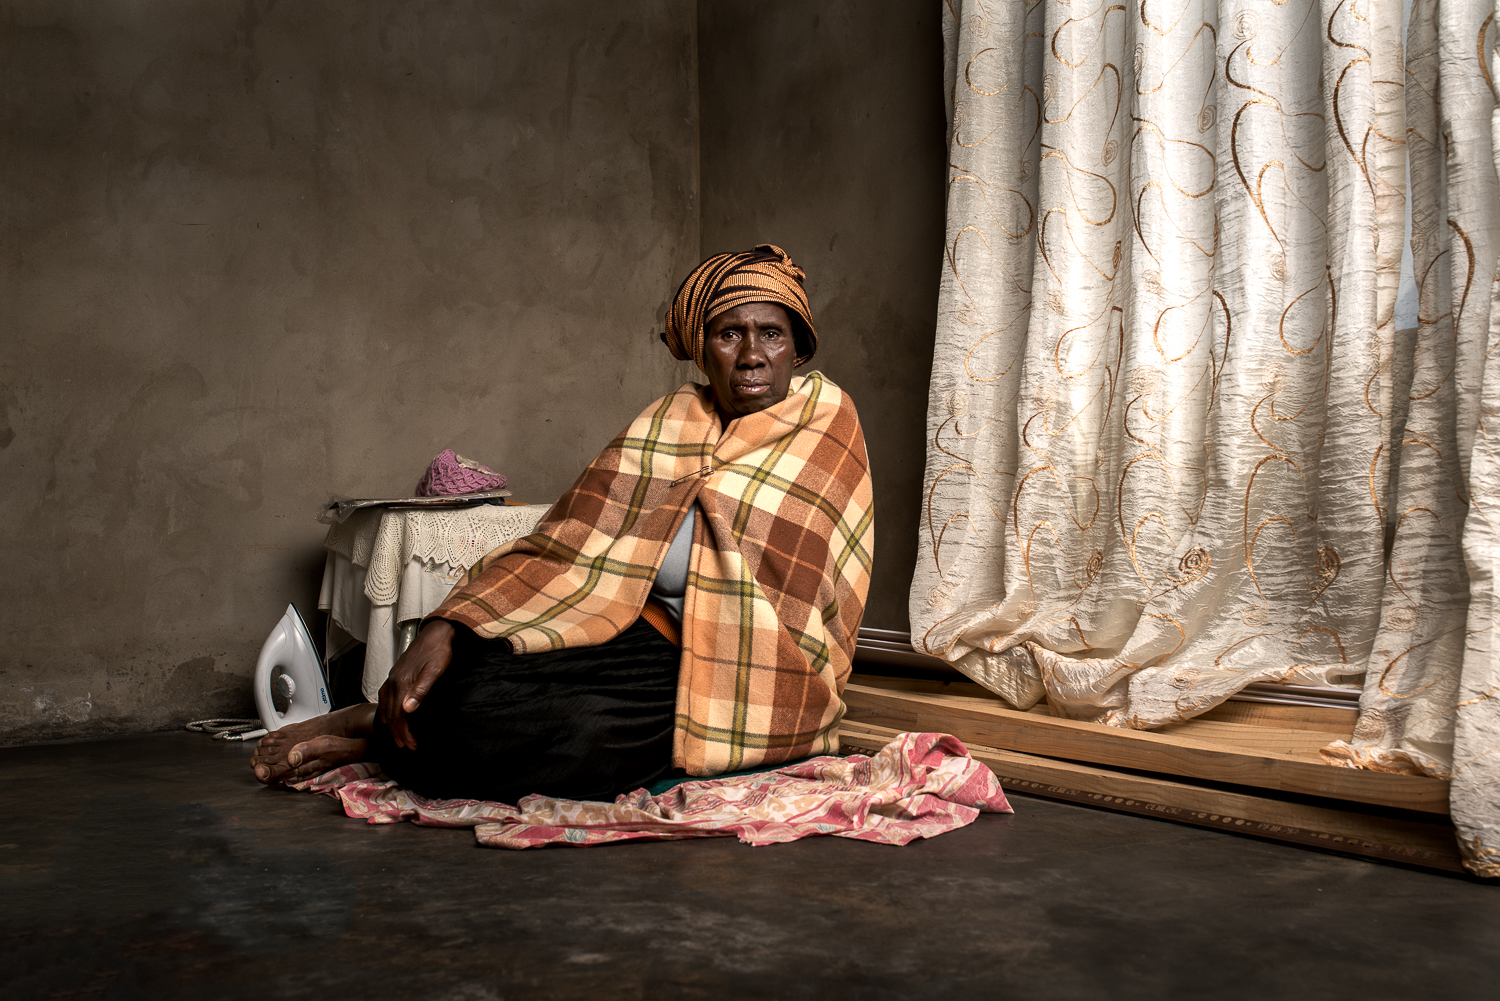 Photo of widow of Makatleho Selibo, a gold miner who died in 2013.